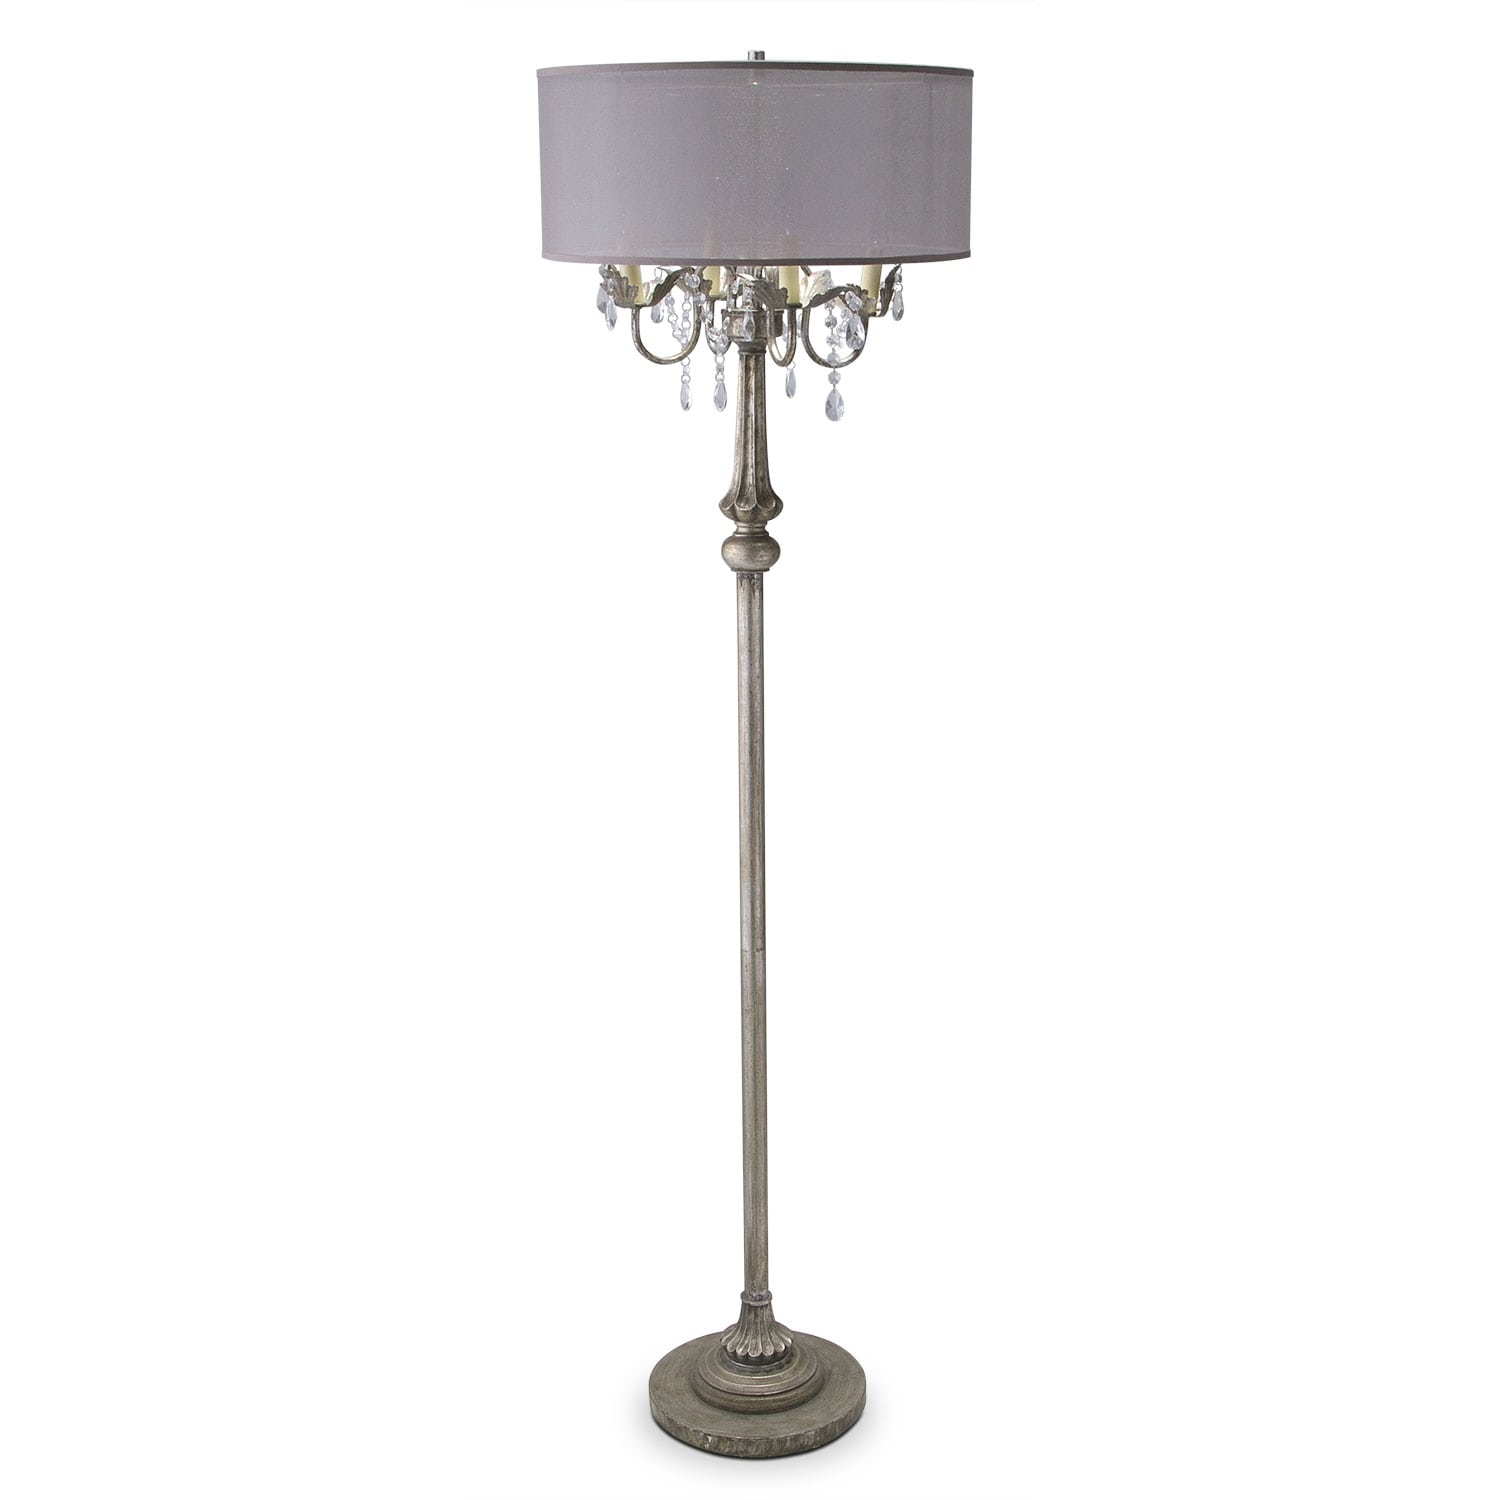 Home Accessories - Chandelier Floor Lamp